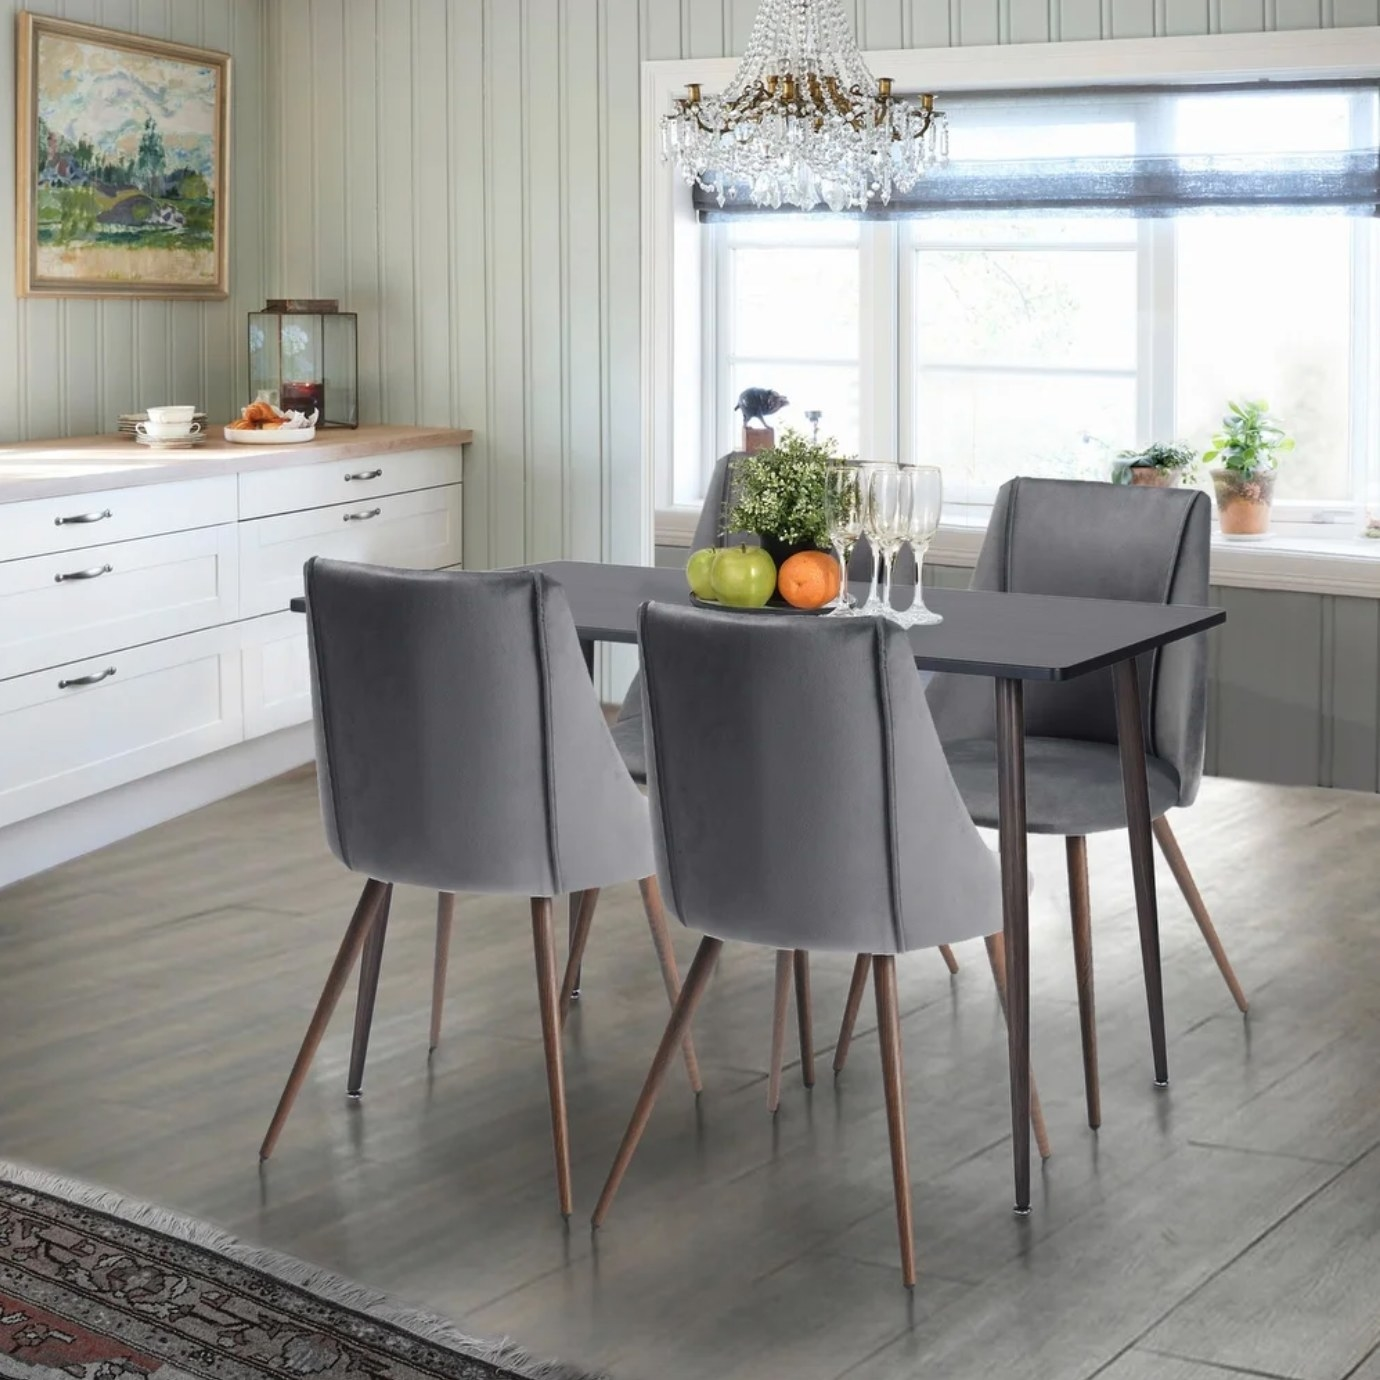 The gray dining set